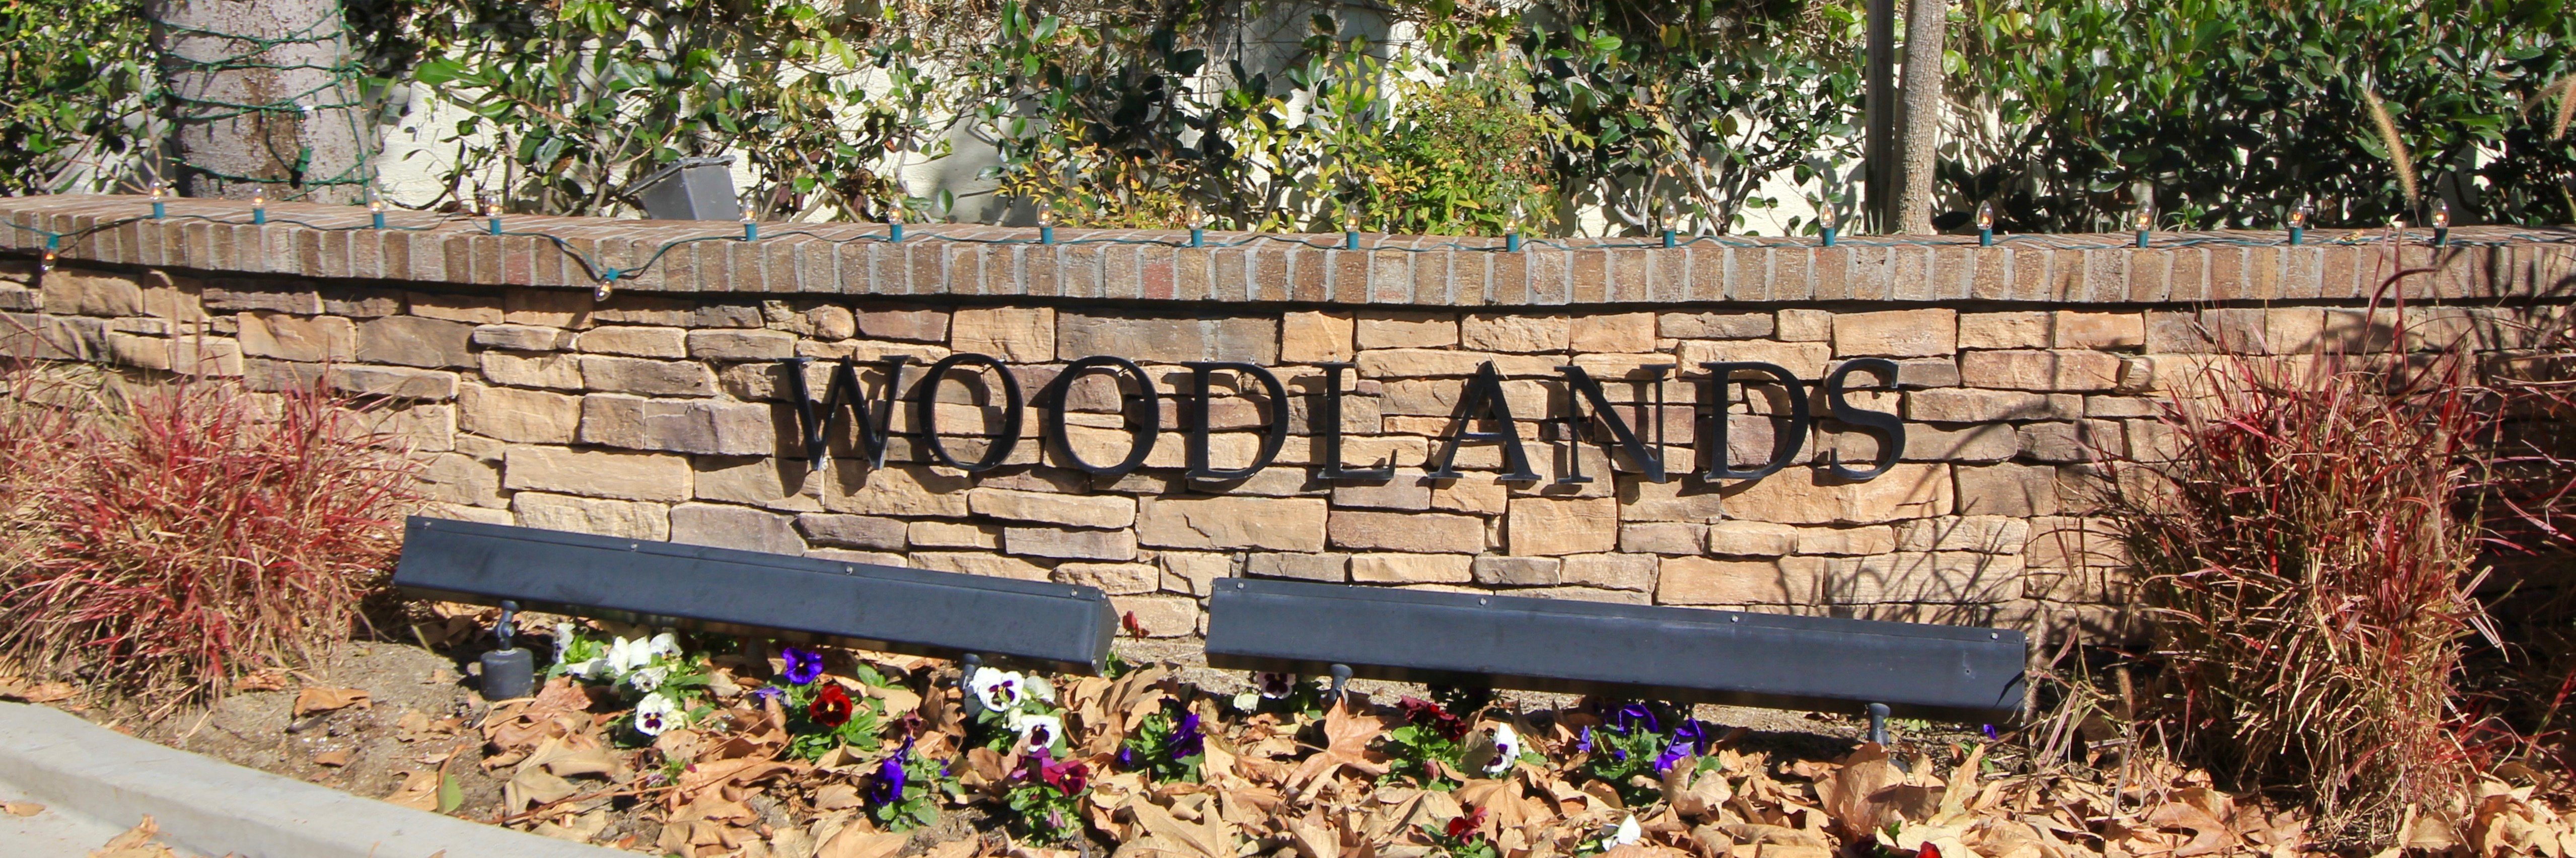 Woodlands Community Marquee in Aliso Viejo Ca